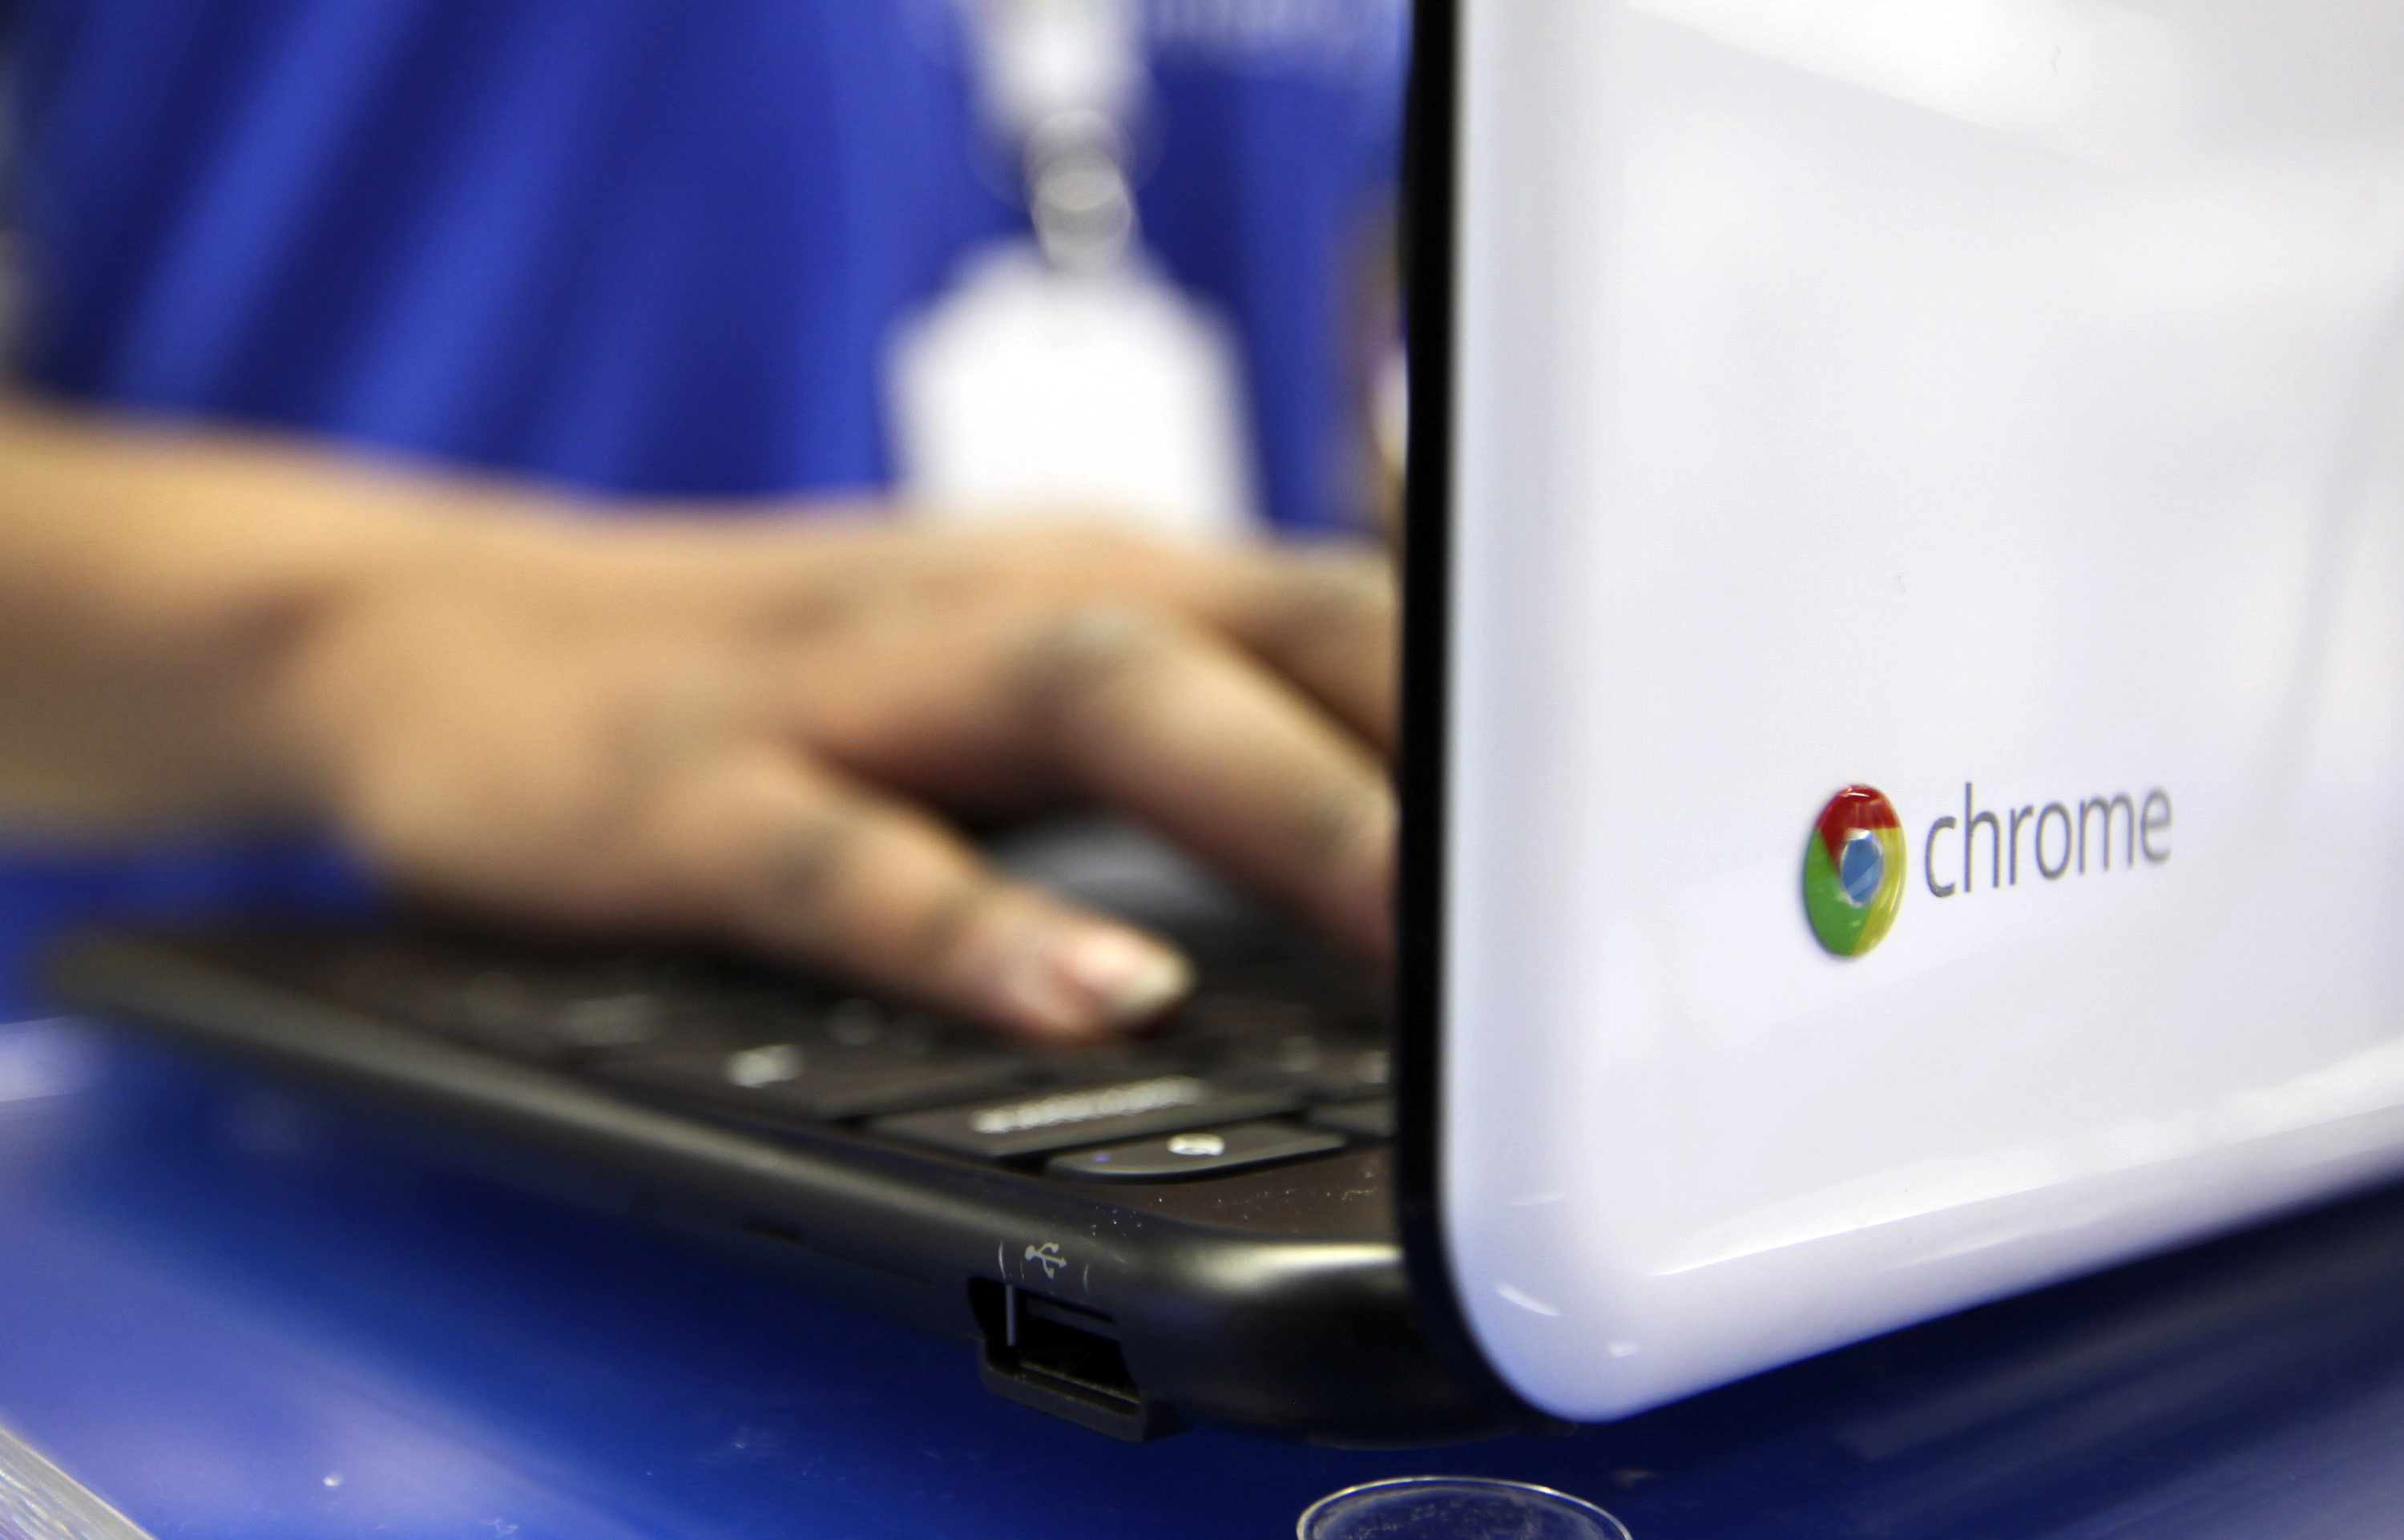 Inside The Google Chromebook Store